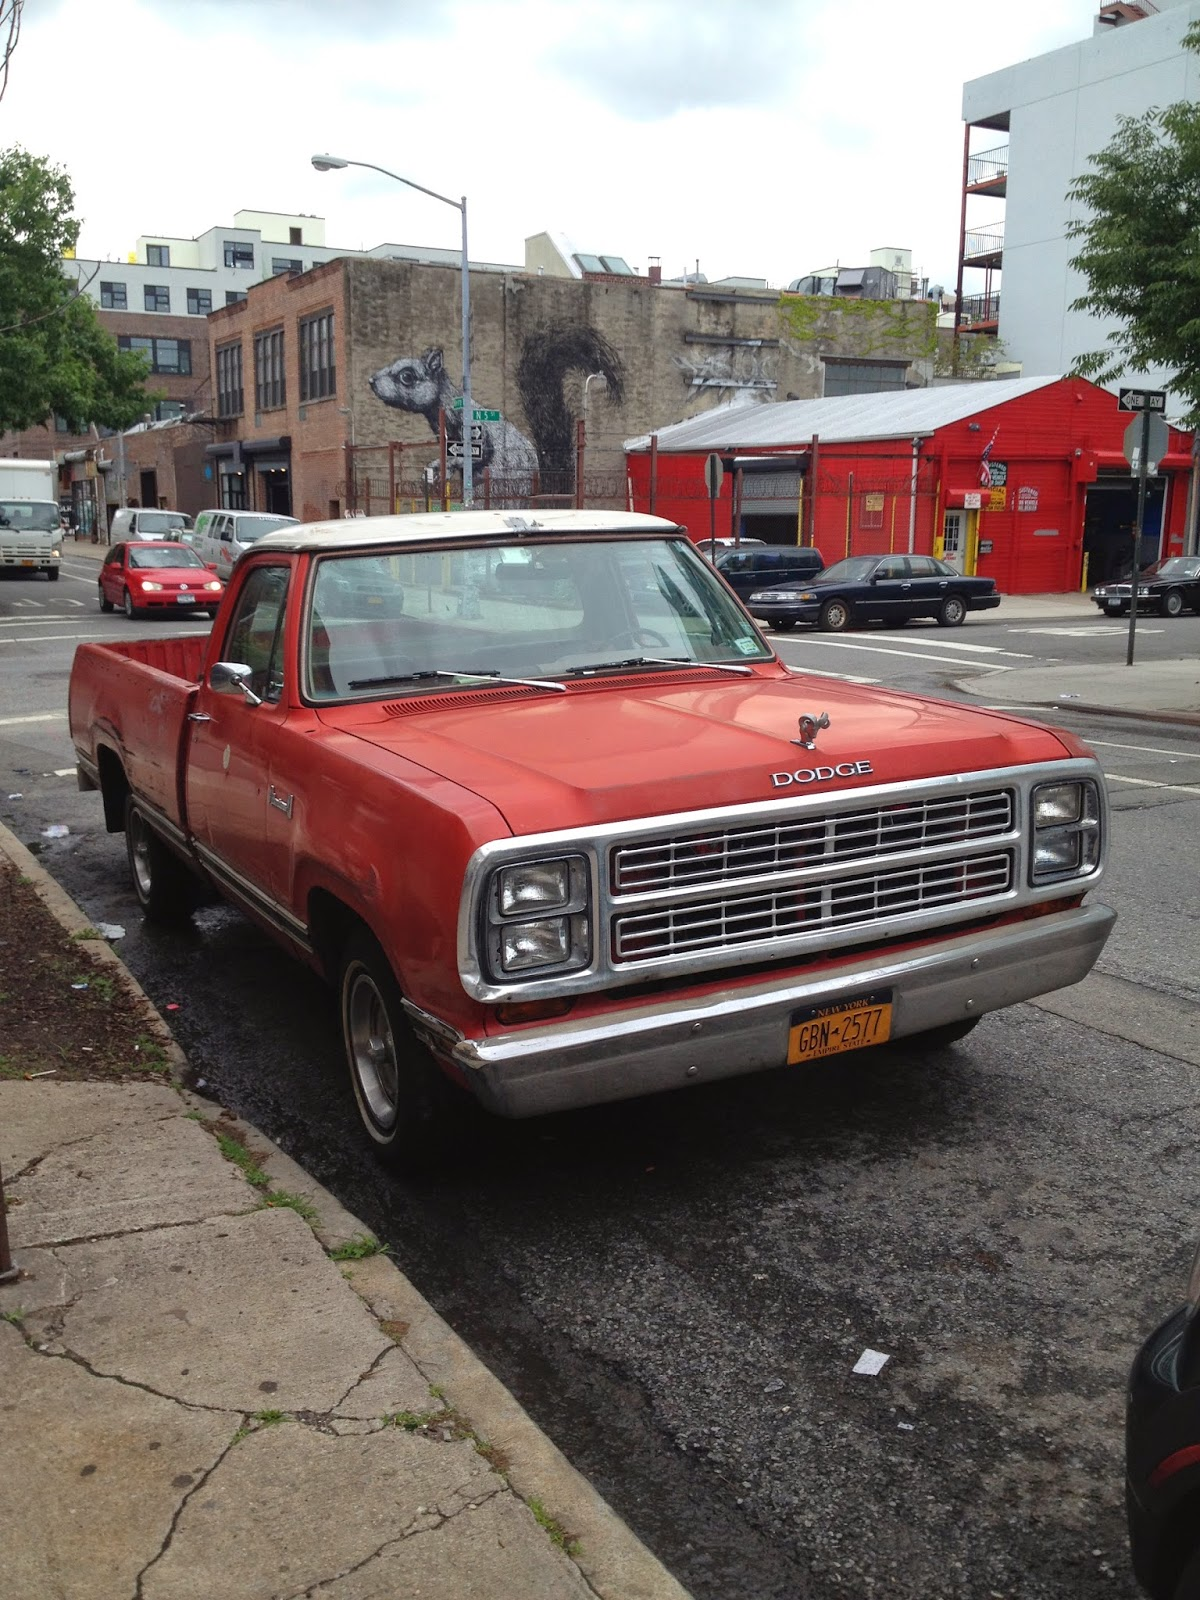 Nyc Hoopties Whips Rides Buckets Junkers And Clunkers Grabbing 1961 Dodge Pickup Truck The D Series Trucks Were Built Between 1980 Meaning That This Is One Of Last Its Kind After Name Changed To Ram